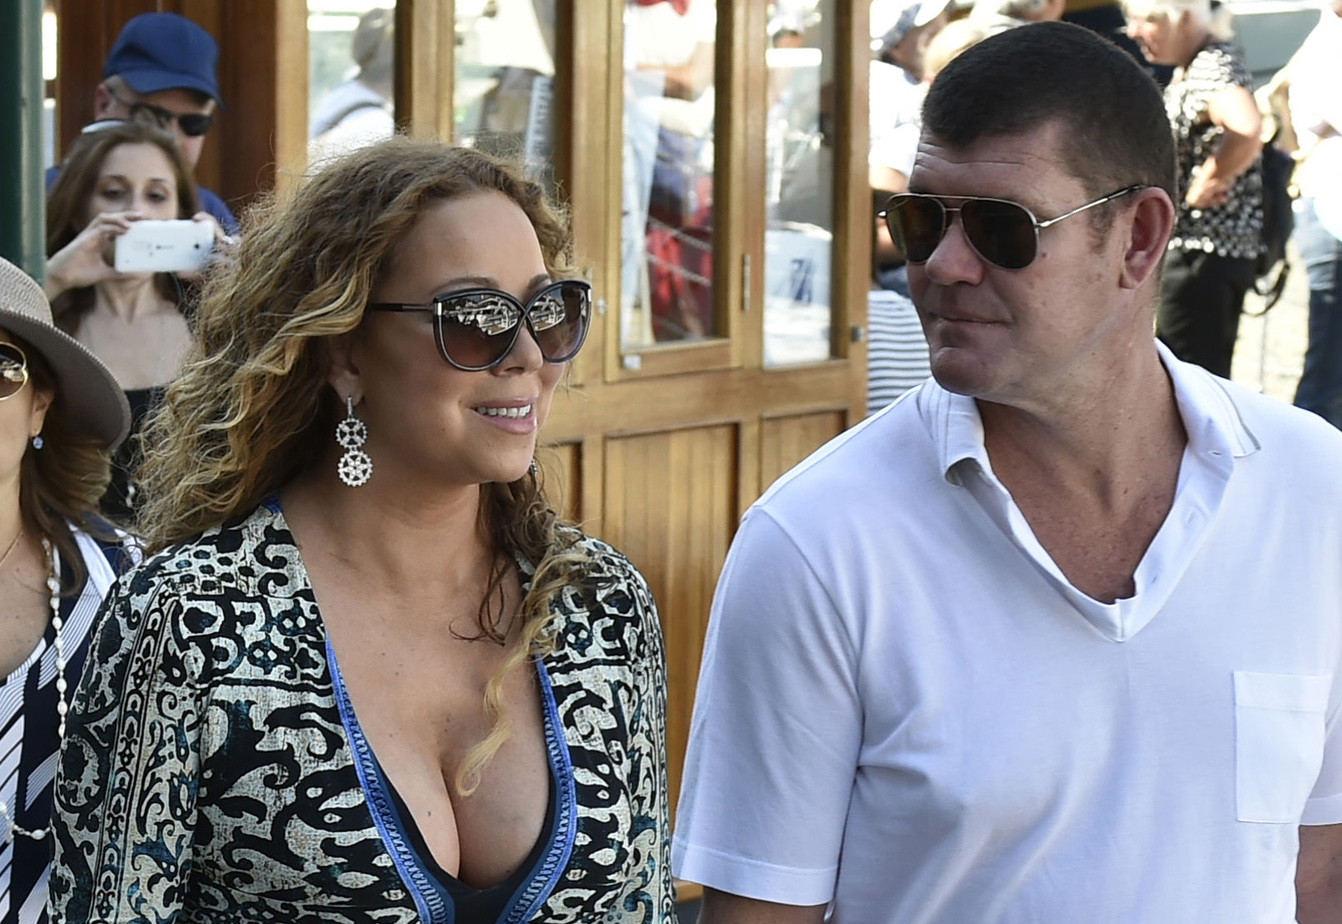 **USA ONLY** Portofino, Italy - Songstress Mariah Carey and her new beau, James Packer, appear to be enjoying each other's company as they take in the sights in beautiful Portofino. The two have been spotted cruising the Mediterranean coastline on the billionaire businessman's boat and have spend their days relaxing and shopping around town. AKM-GSI June 26, 2015 **USA ONLY** To License These Photos, Please Contact : Steve Ginsburg (310) 505-8447 (323) 423-9397 steve@akmgsi.com sales@akmgsi.com or Maria Buda (917) 242-1505 mbuda@akmgsi.com ginsburgspalyinc@gmail.com